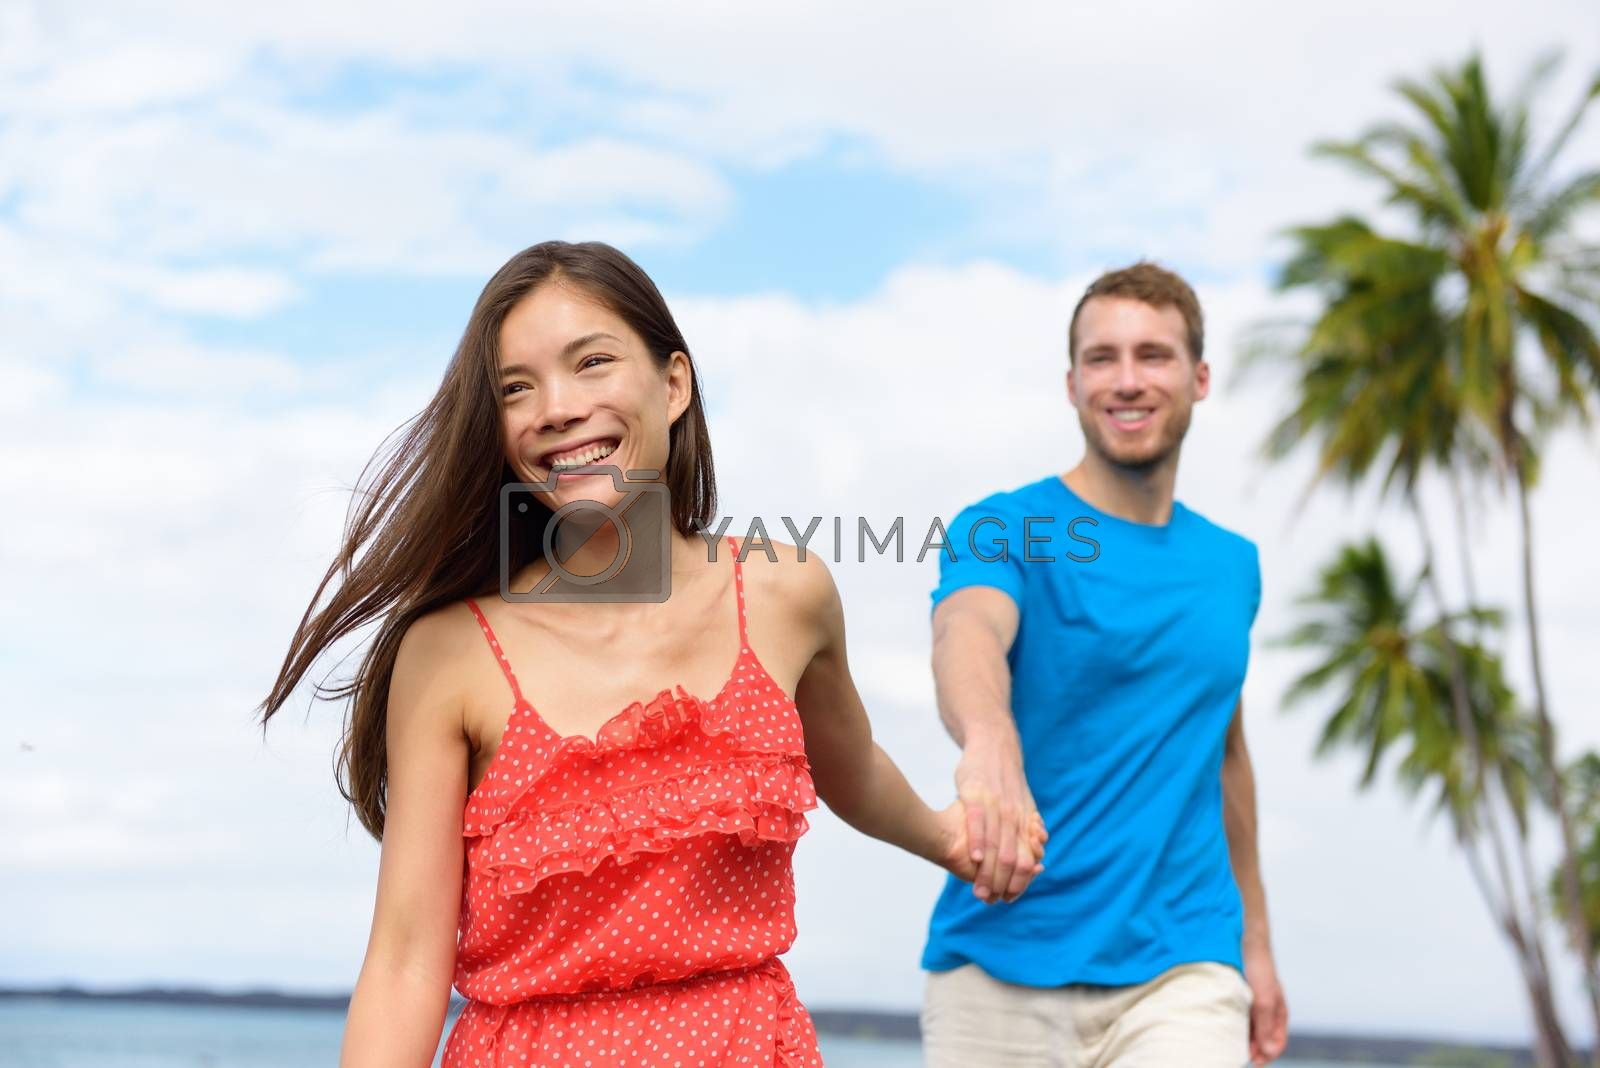 Happy summer vacation couple walking holding hands on beach travel destination. Asian woman caucasian man multiracial people together having fun.